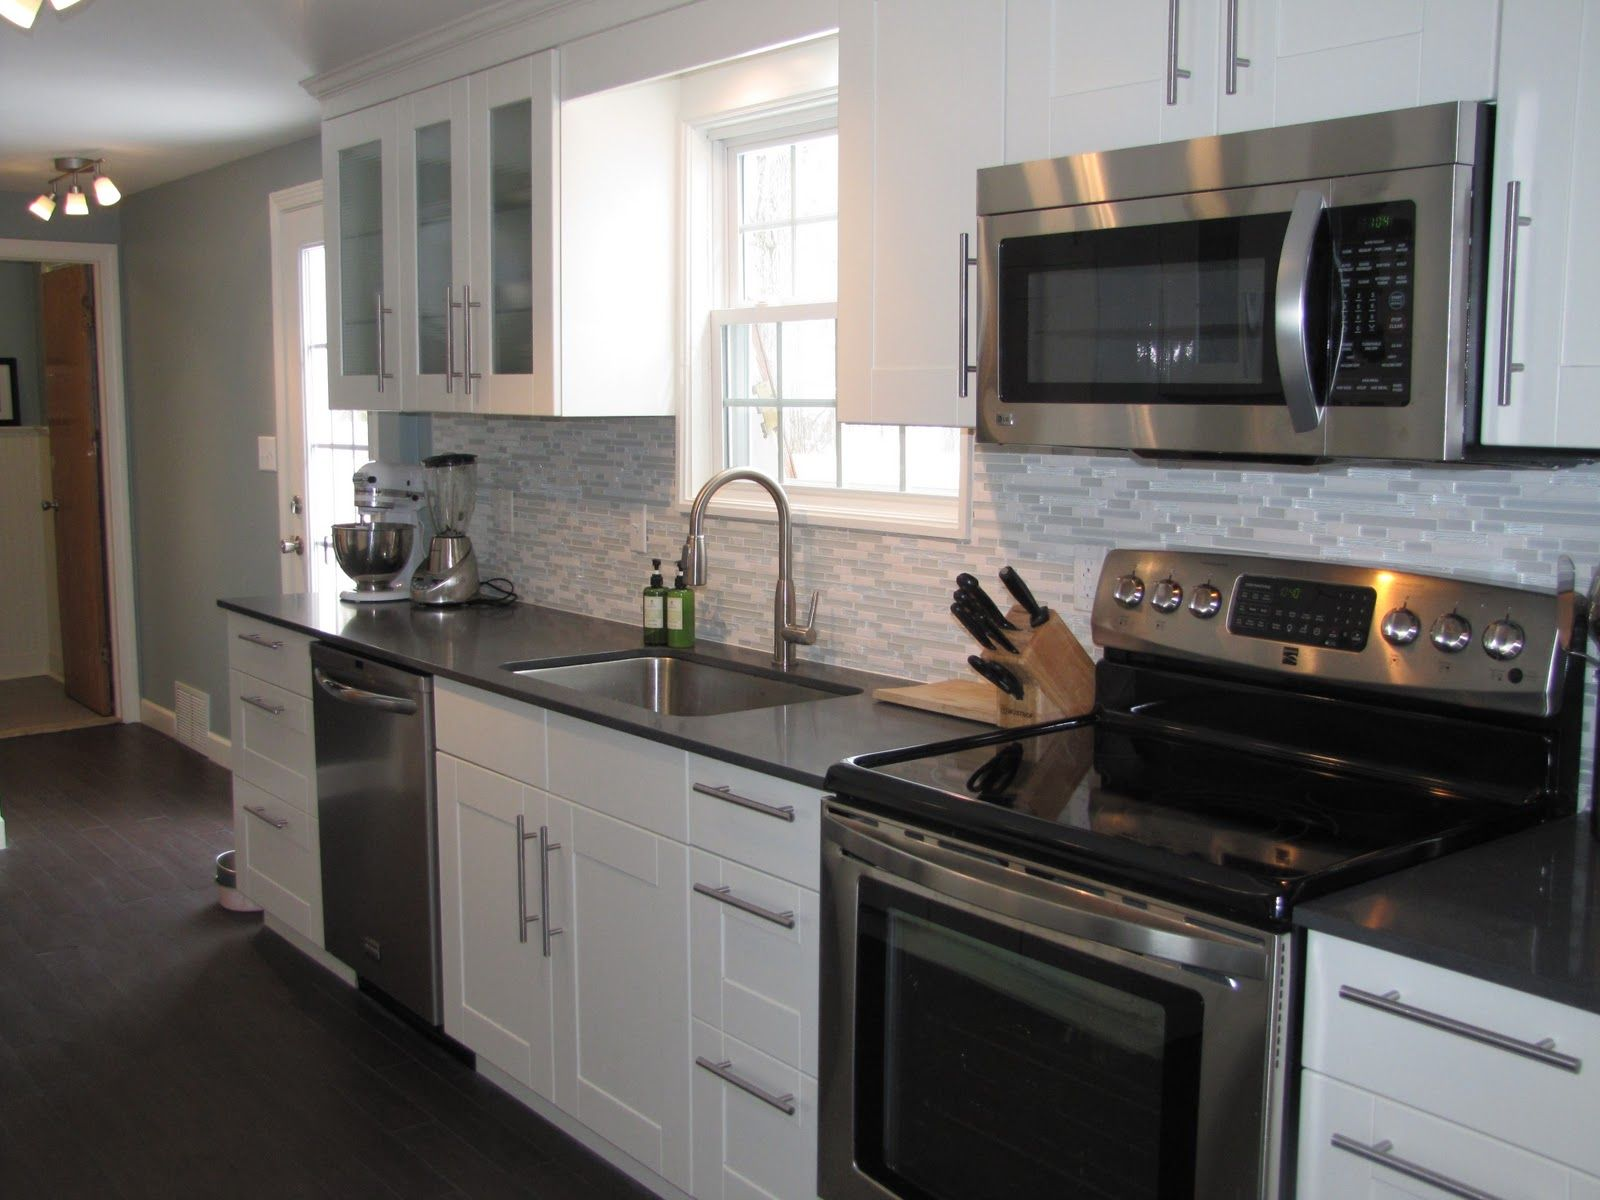 Glamorous Kitchen Cabinet Colors With Black Appliances